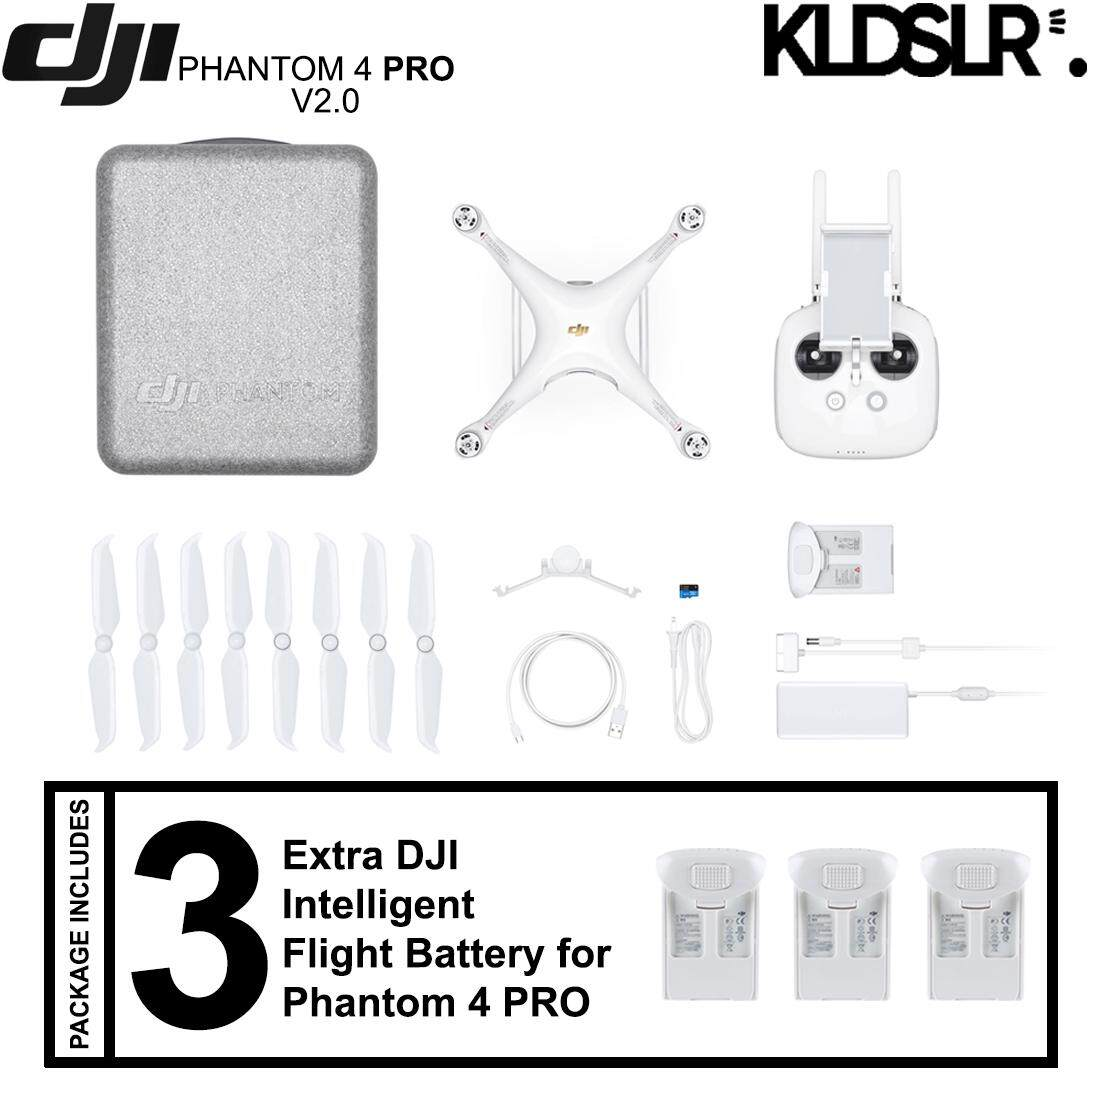 DJI Phantom 4 Pro+ Version 2.0 Quadcopter (FREE Extra 3 Original Batteries)